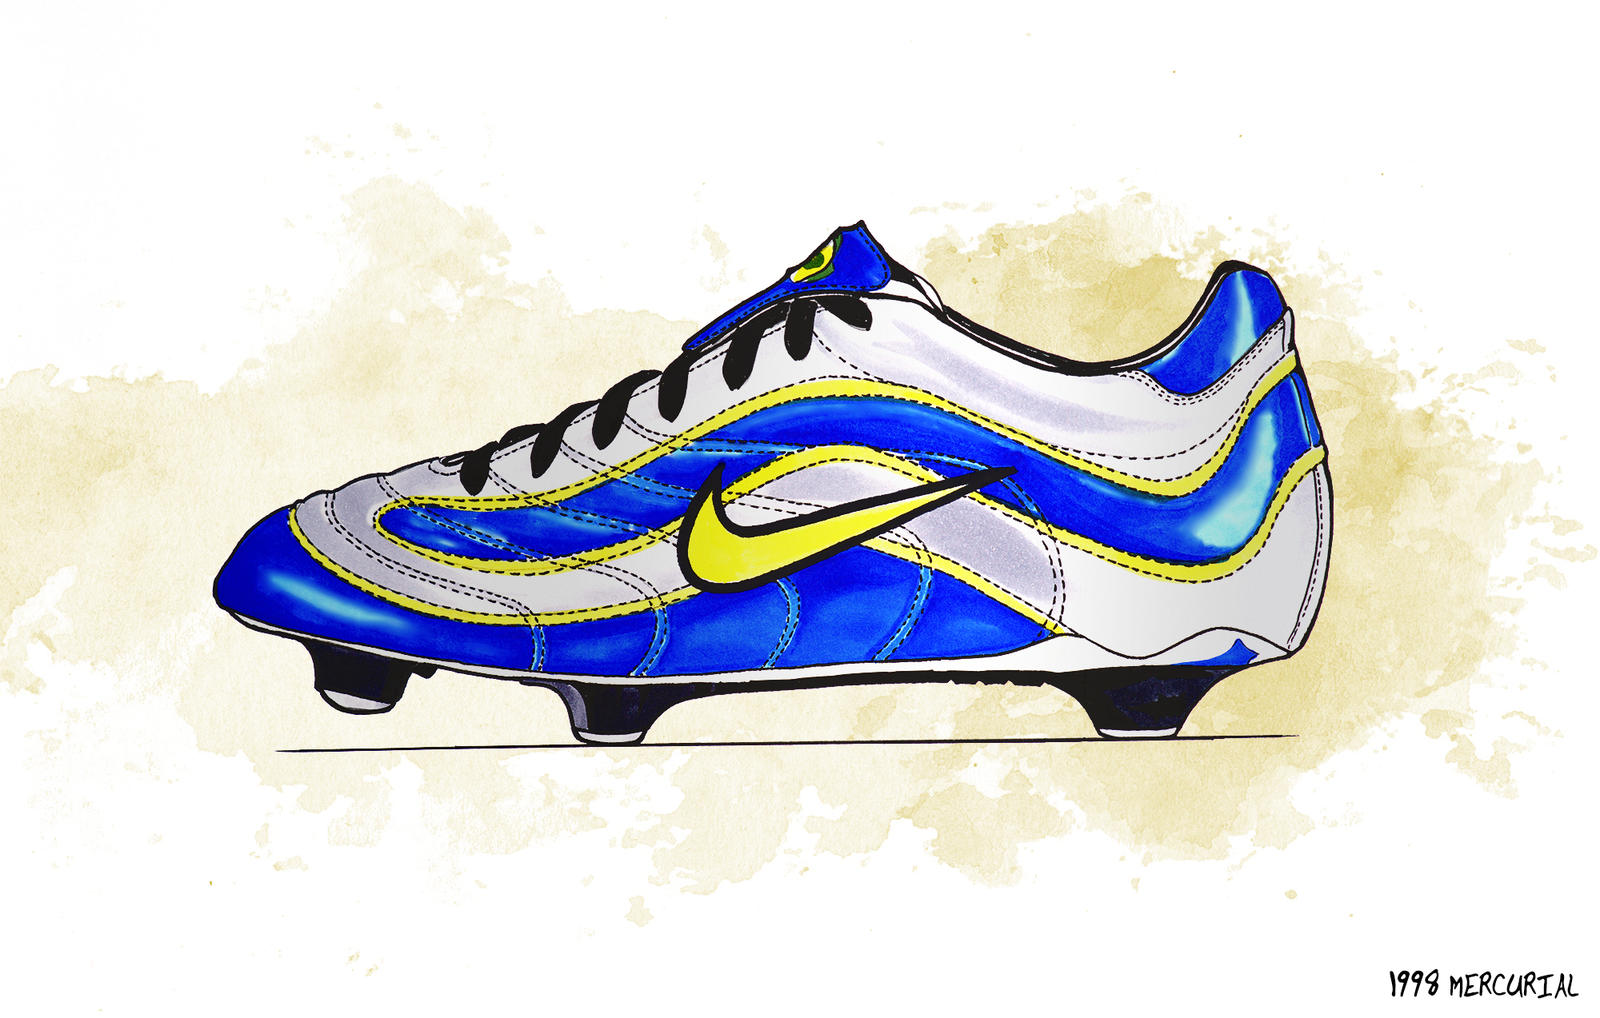 Santo mueble artículo  Nike Mercurial Highlights: From Fast to Faster - Nike News